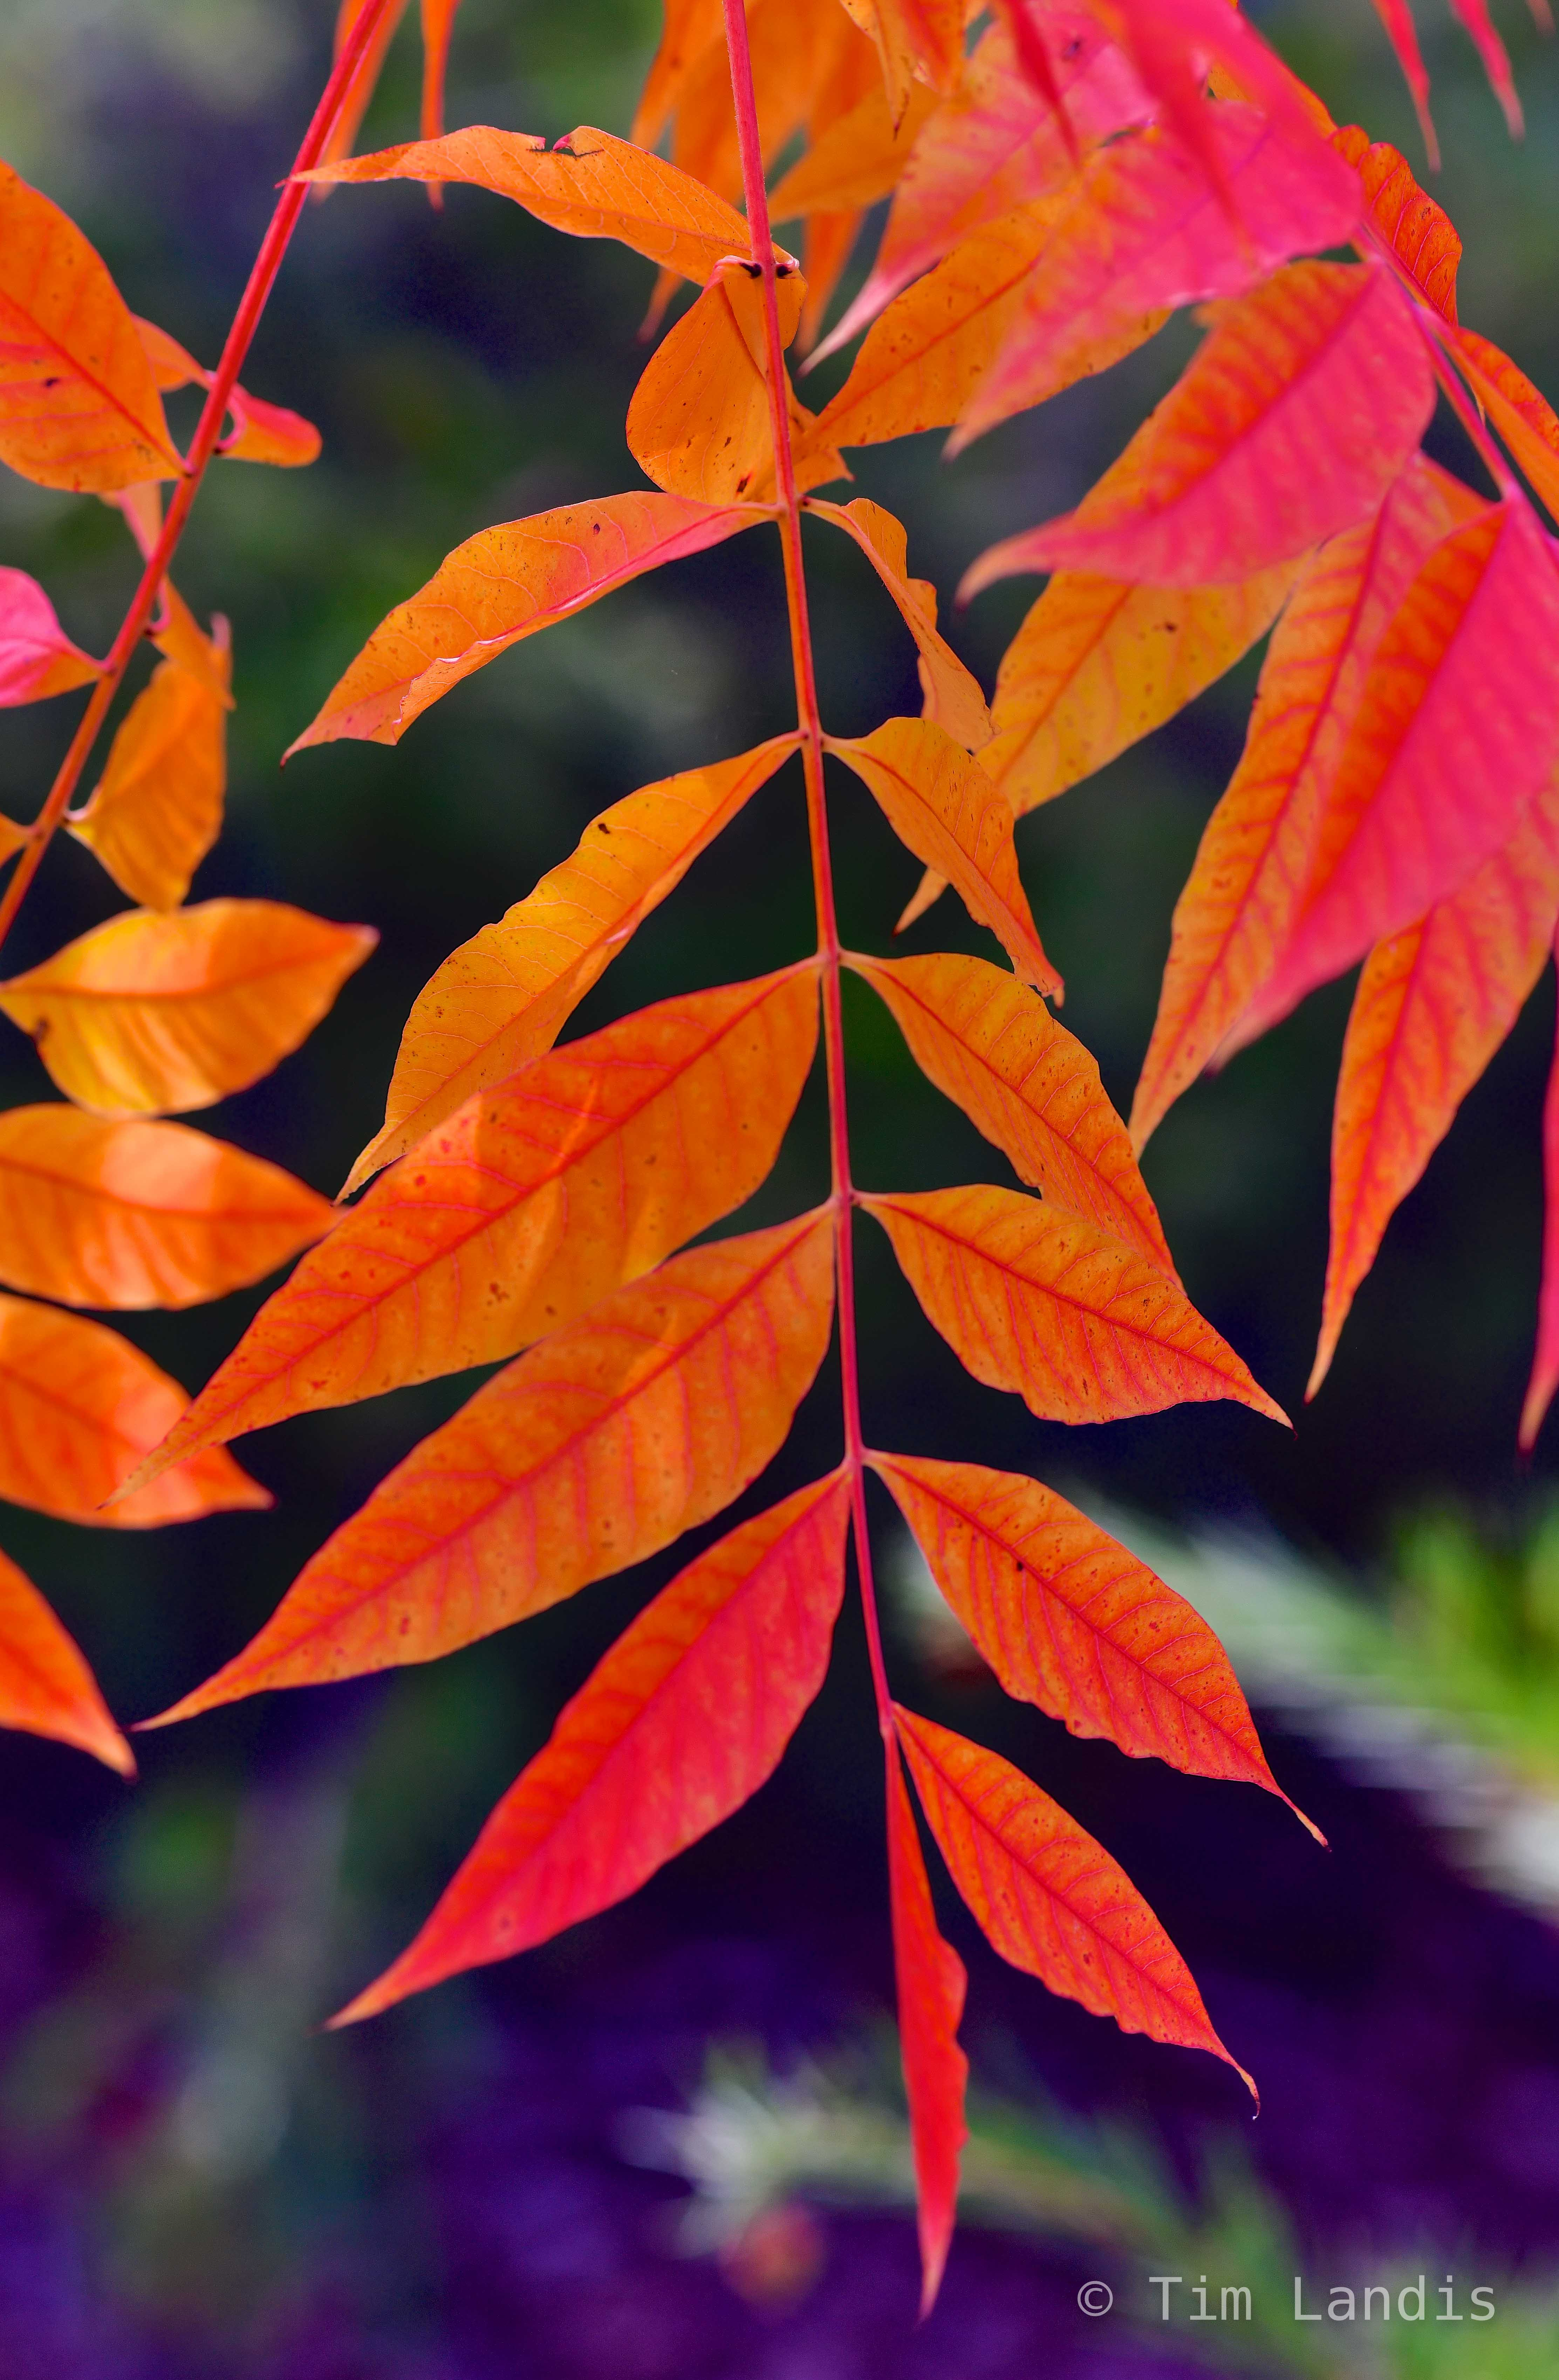 autumn leaves, close up of orange and pink leaves, compound leaves, pistachio leaves, photo